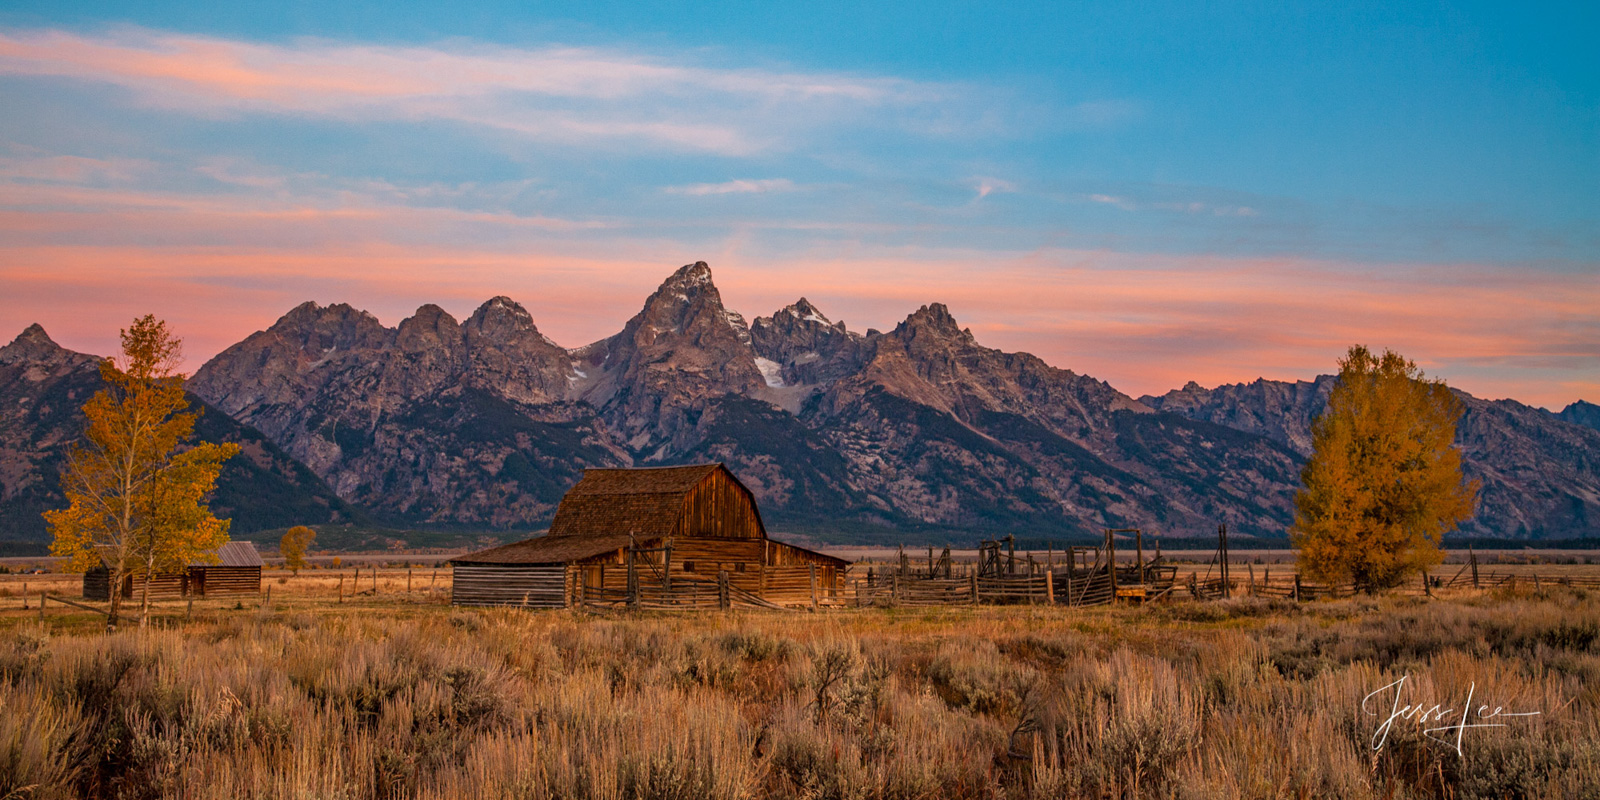 photo of barn in Grand Tetons in Wyoming, Jackson Hole, ranch, farm, old building, fall, autumn colors, wildlife, trees, landscape photography, fine art, print, jess lee, artist, photographer, limited, photo